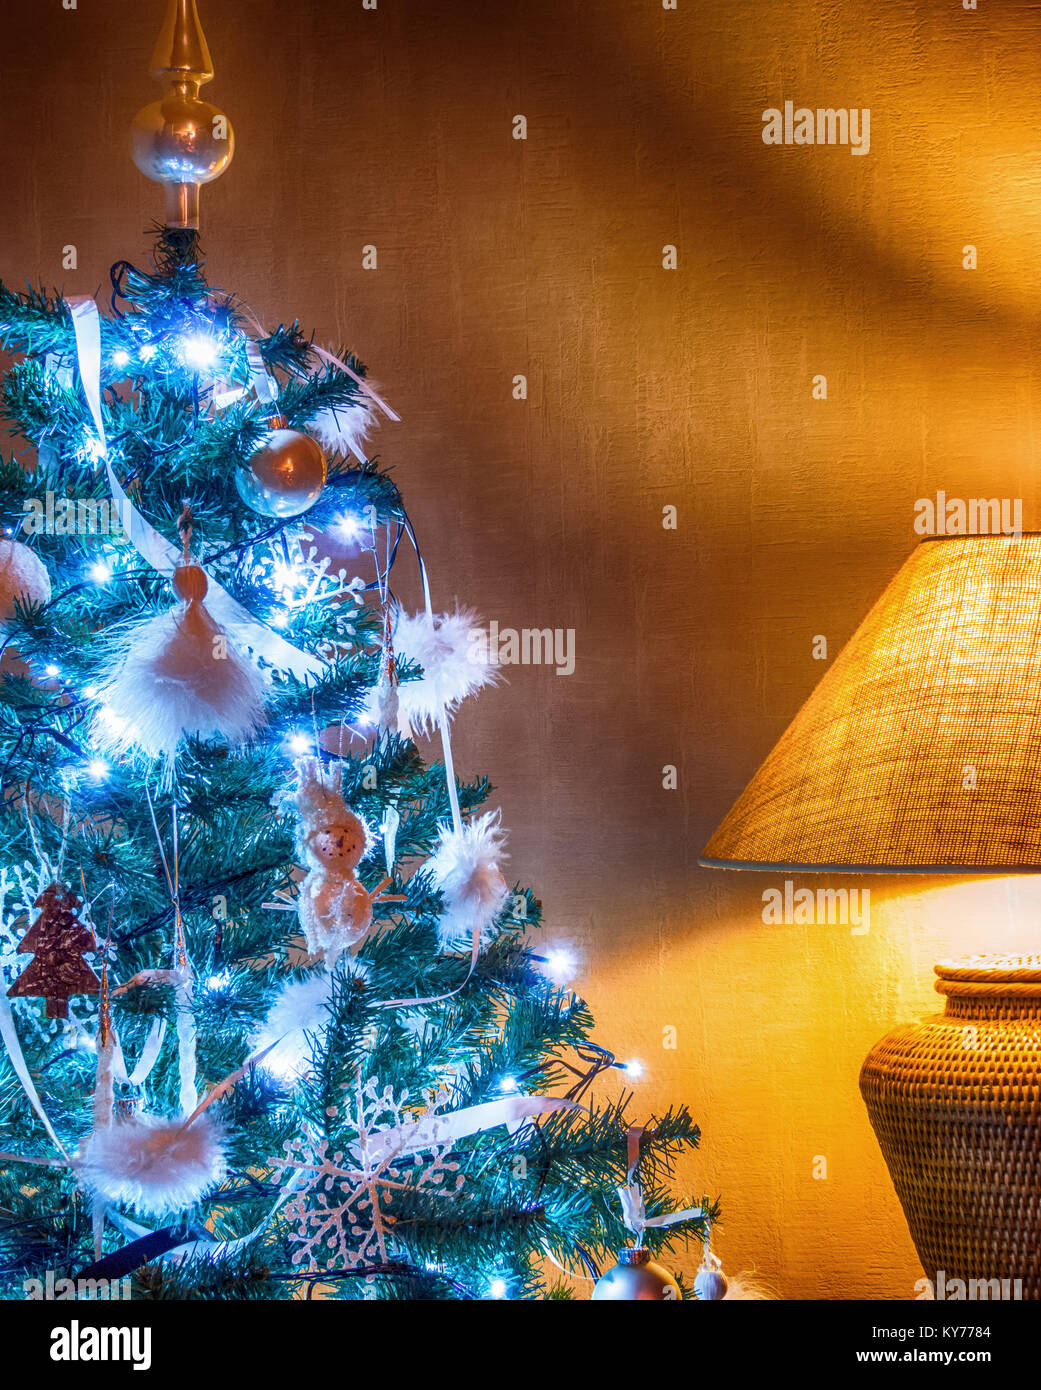 decorated christmas tree with blue lights and yellow table lamp against KY7784